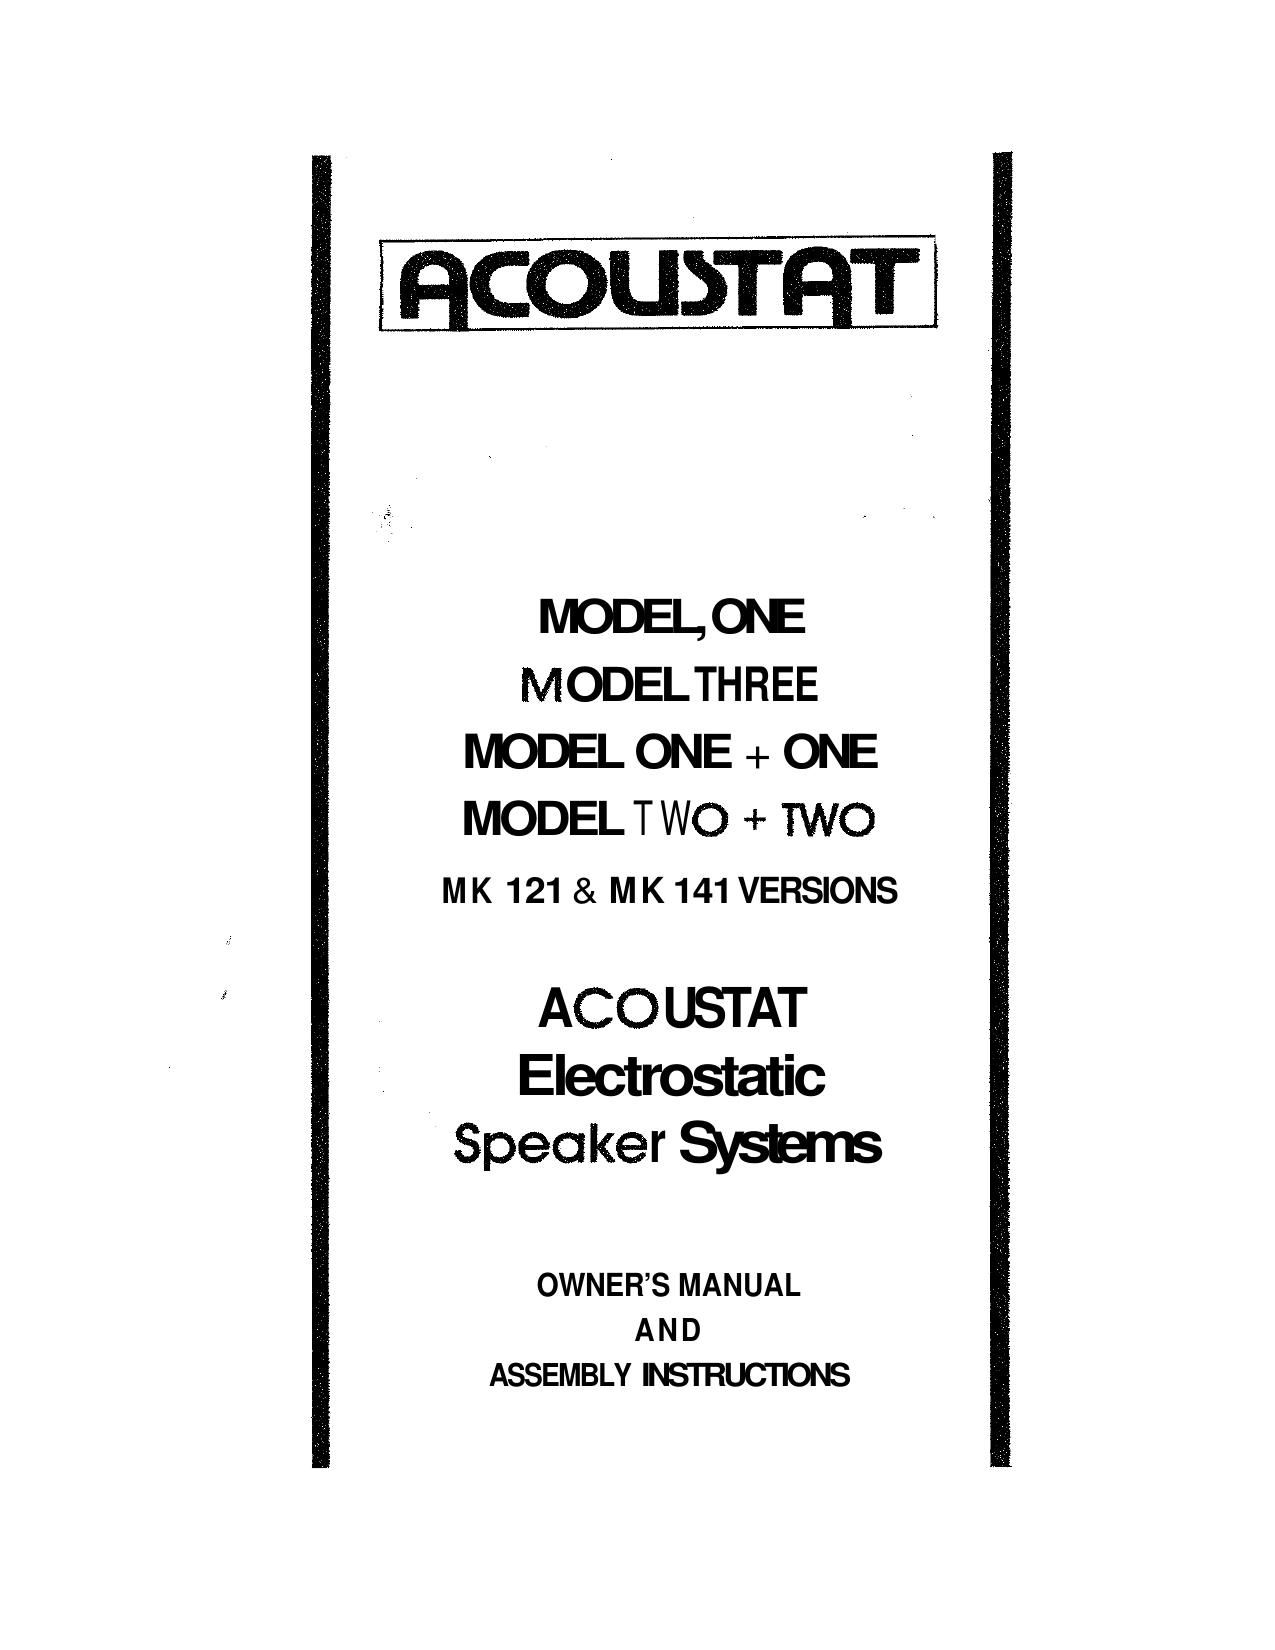 Acoustat MK 121 Owners Manual